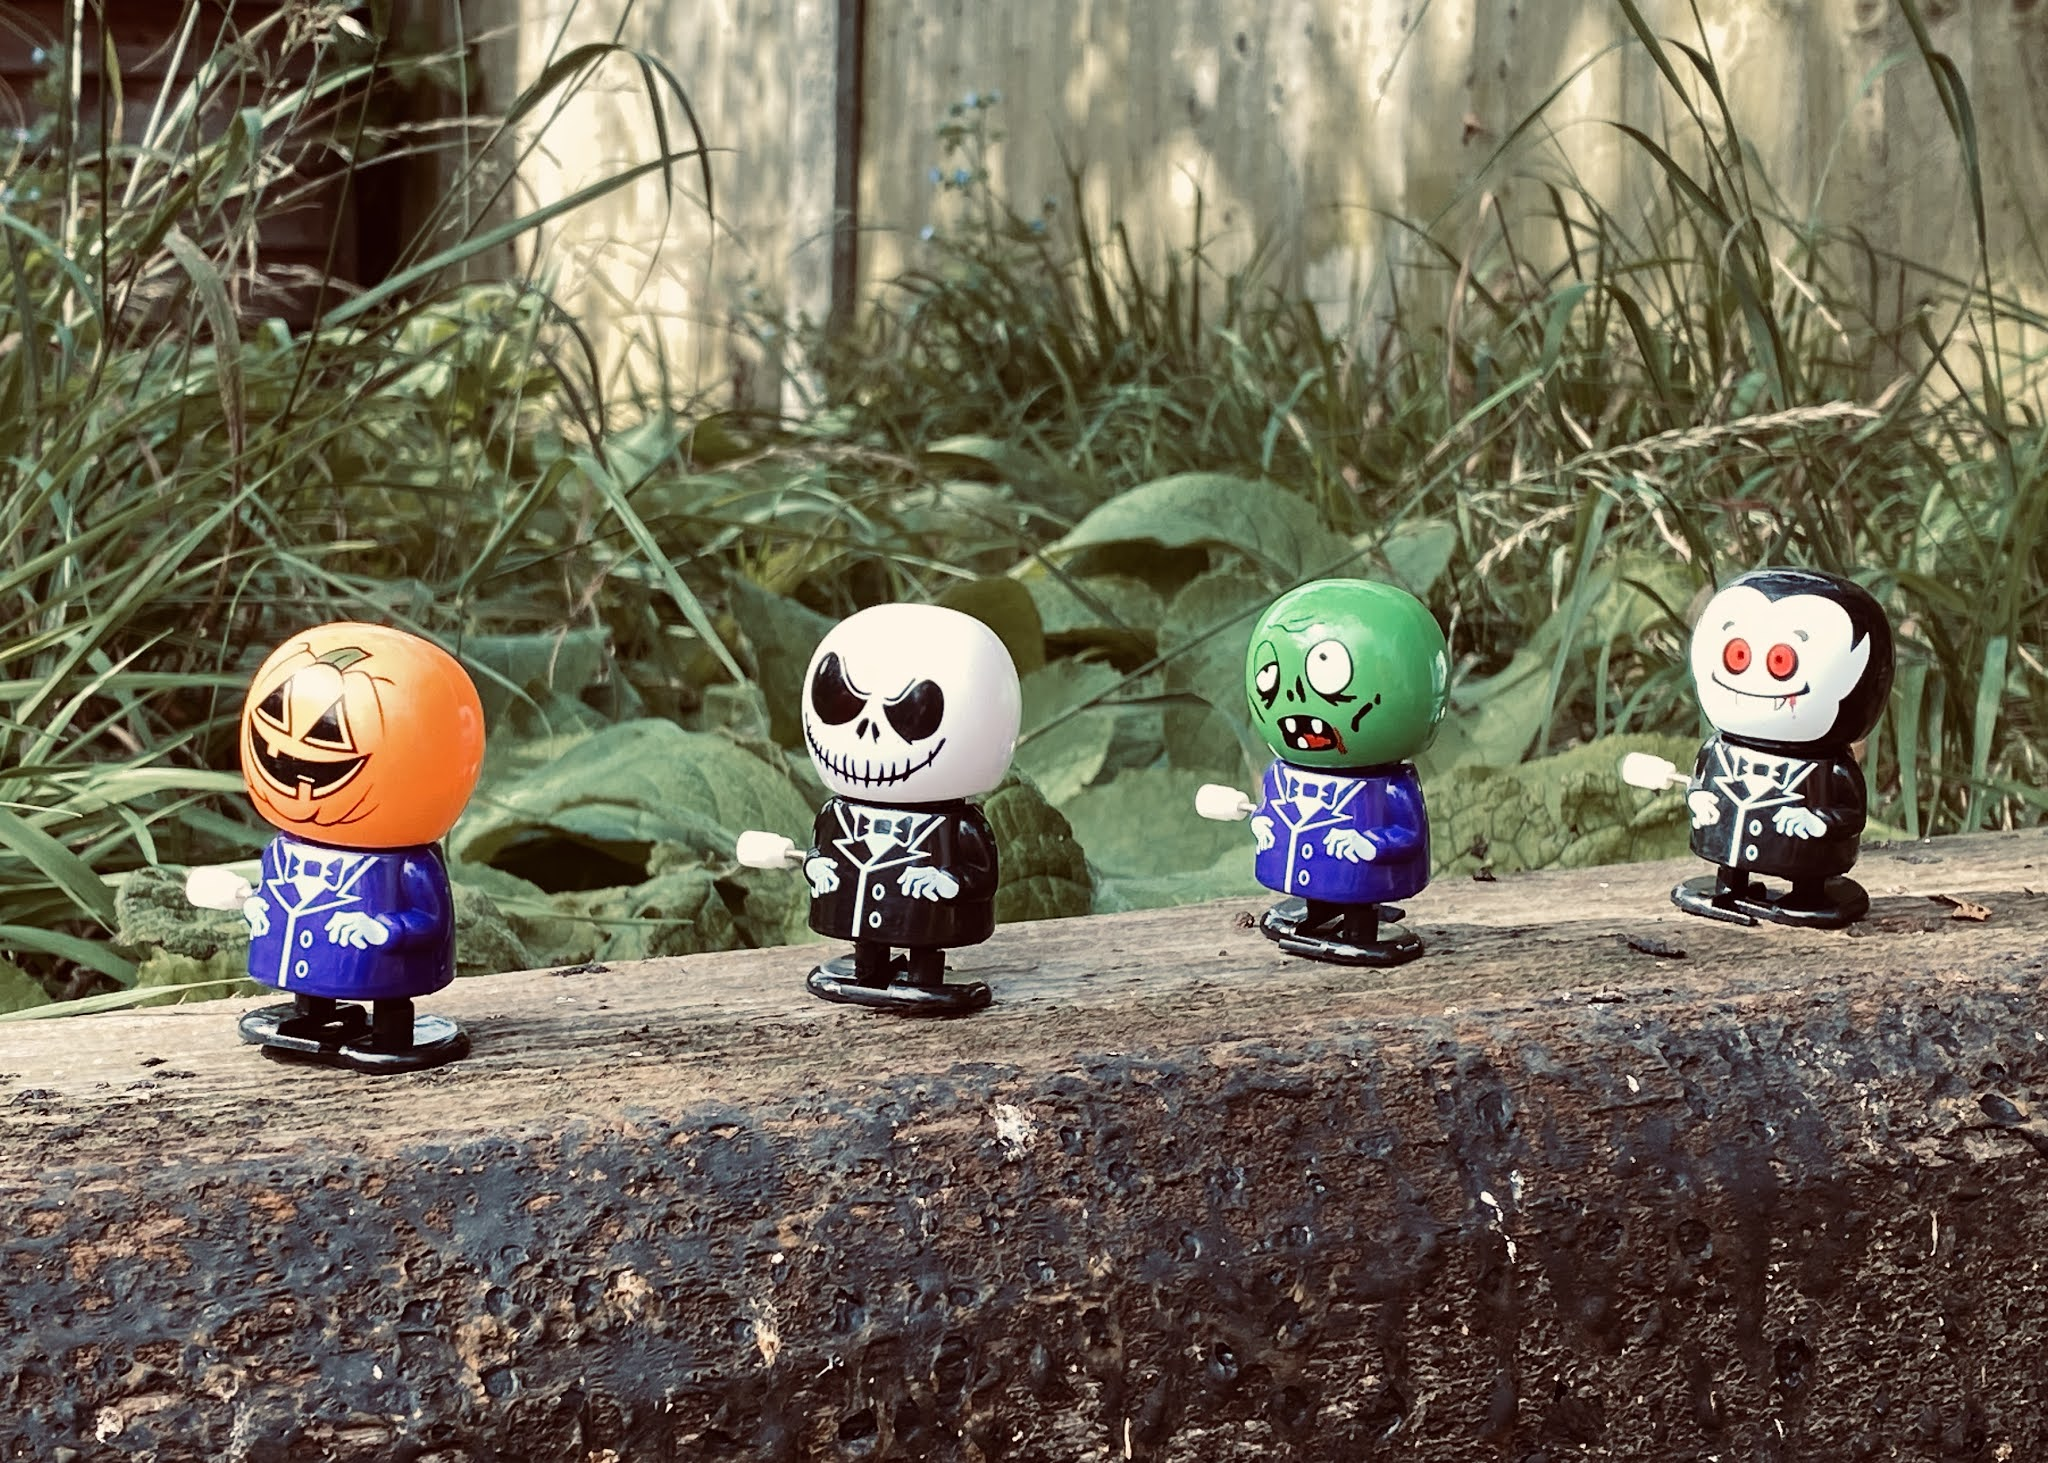 Wind up halloween toys in a lone walking along a railway sleeper in the garden hunting for trick or treat